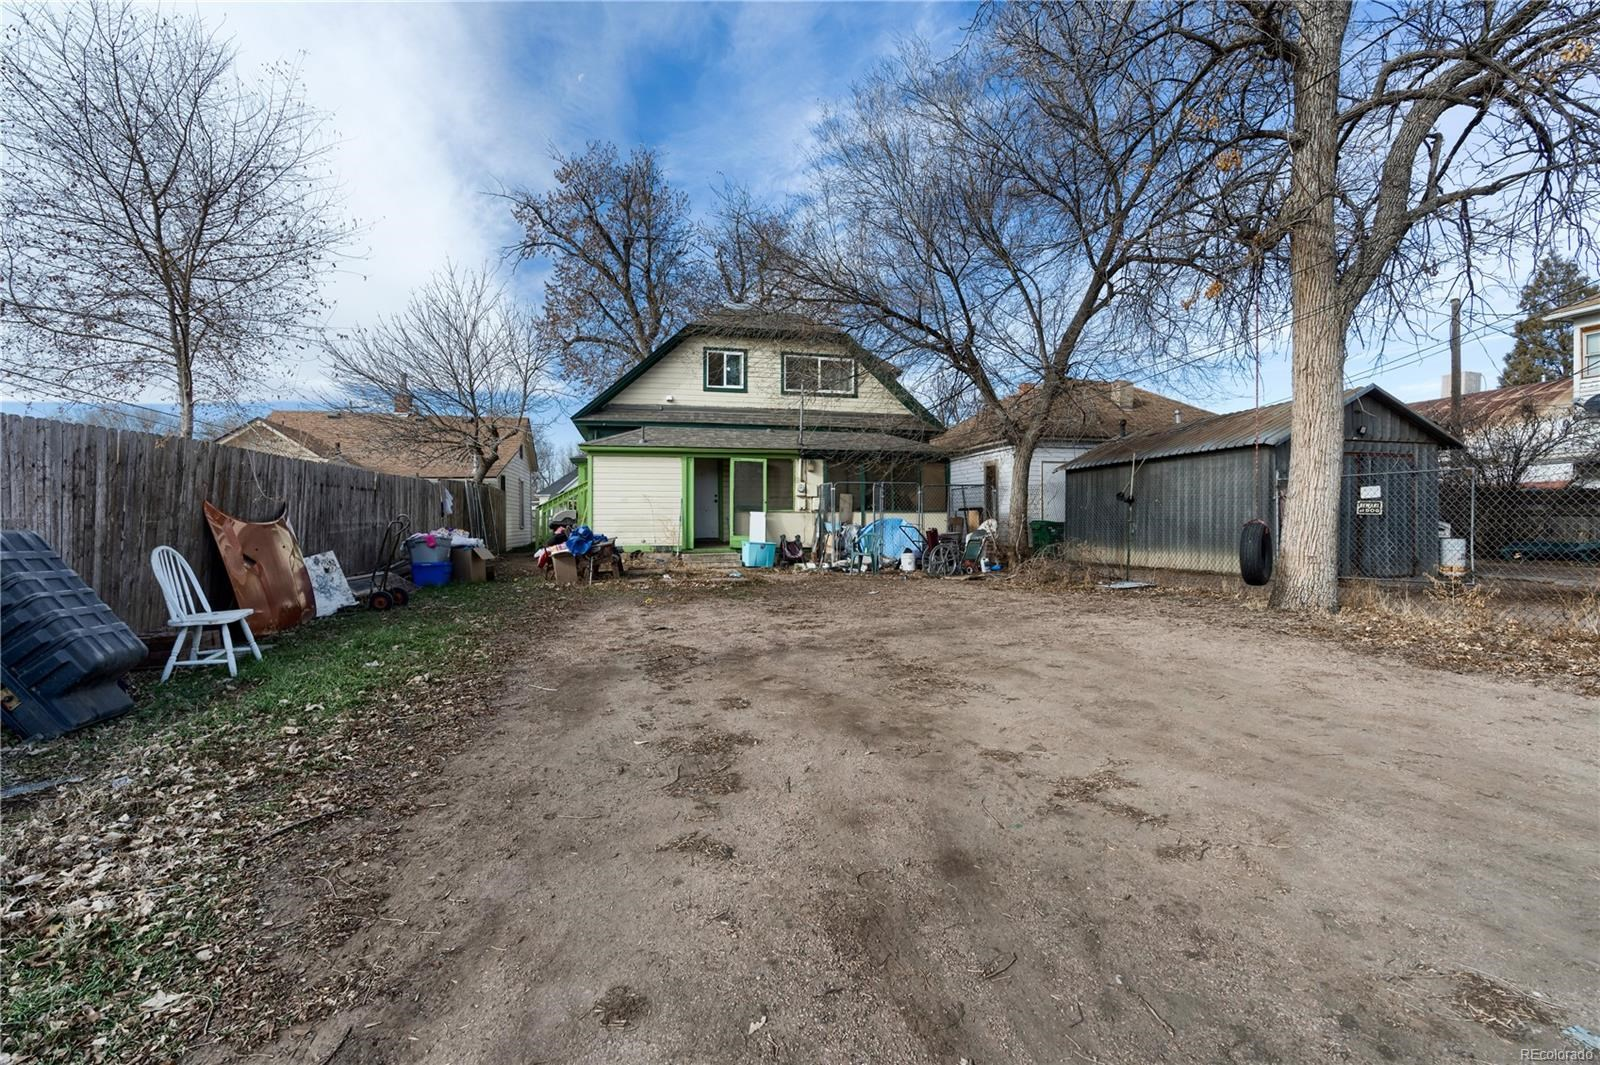 MLS# 1861860 - 410 11th Avenue, Greeley, CO 80631